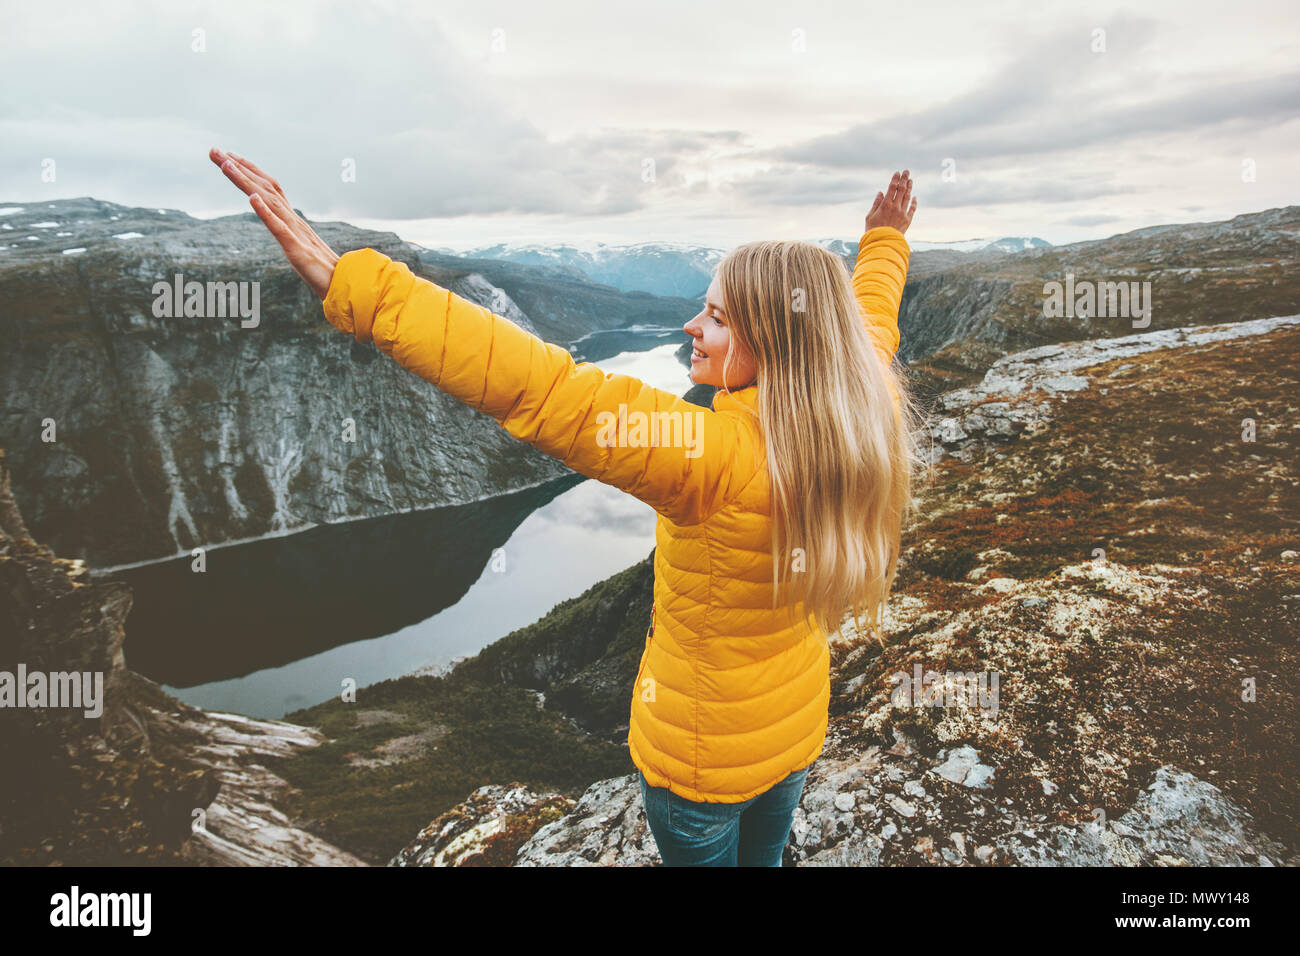 Young woman happy raised hands on mountain top travel adventure lifestyle journey vacations aerial lake landscape success wellness emotions - Stock Image